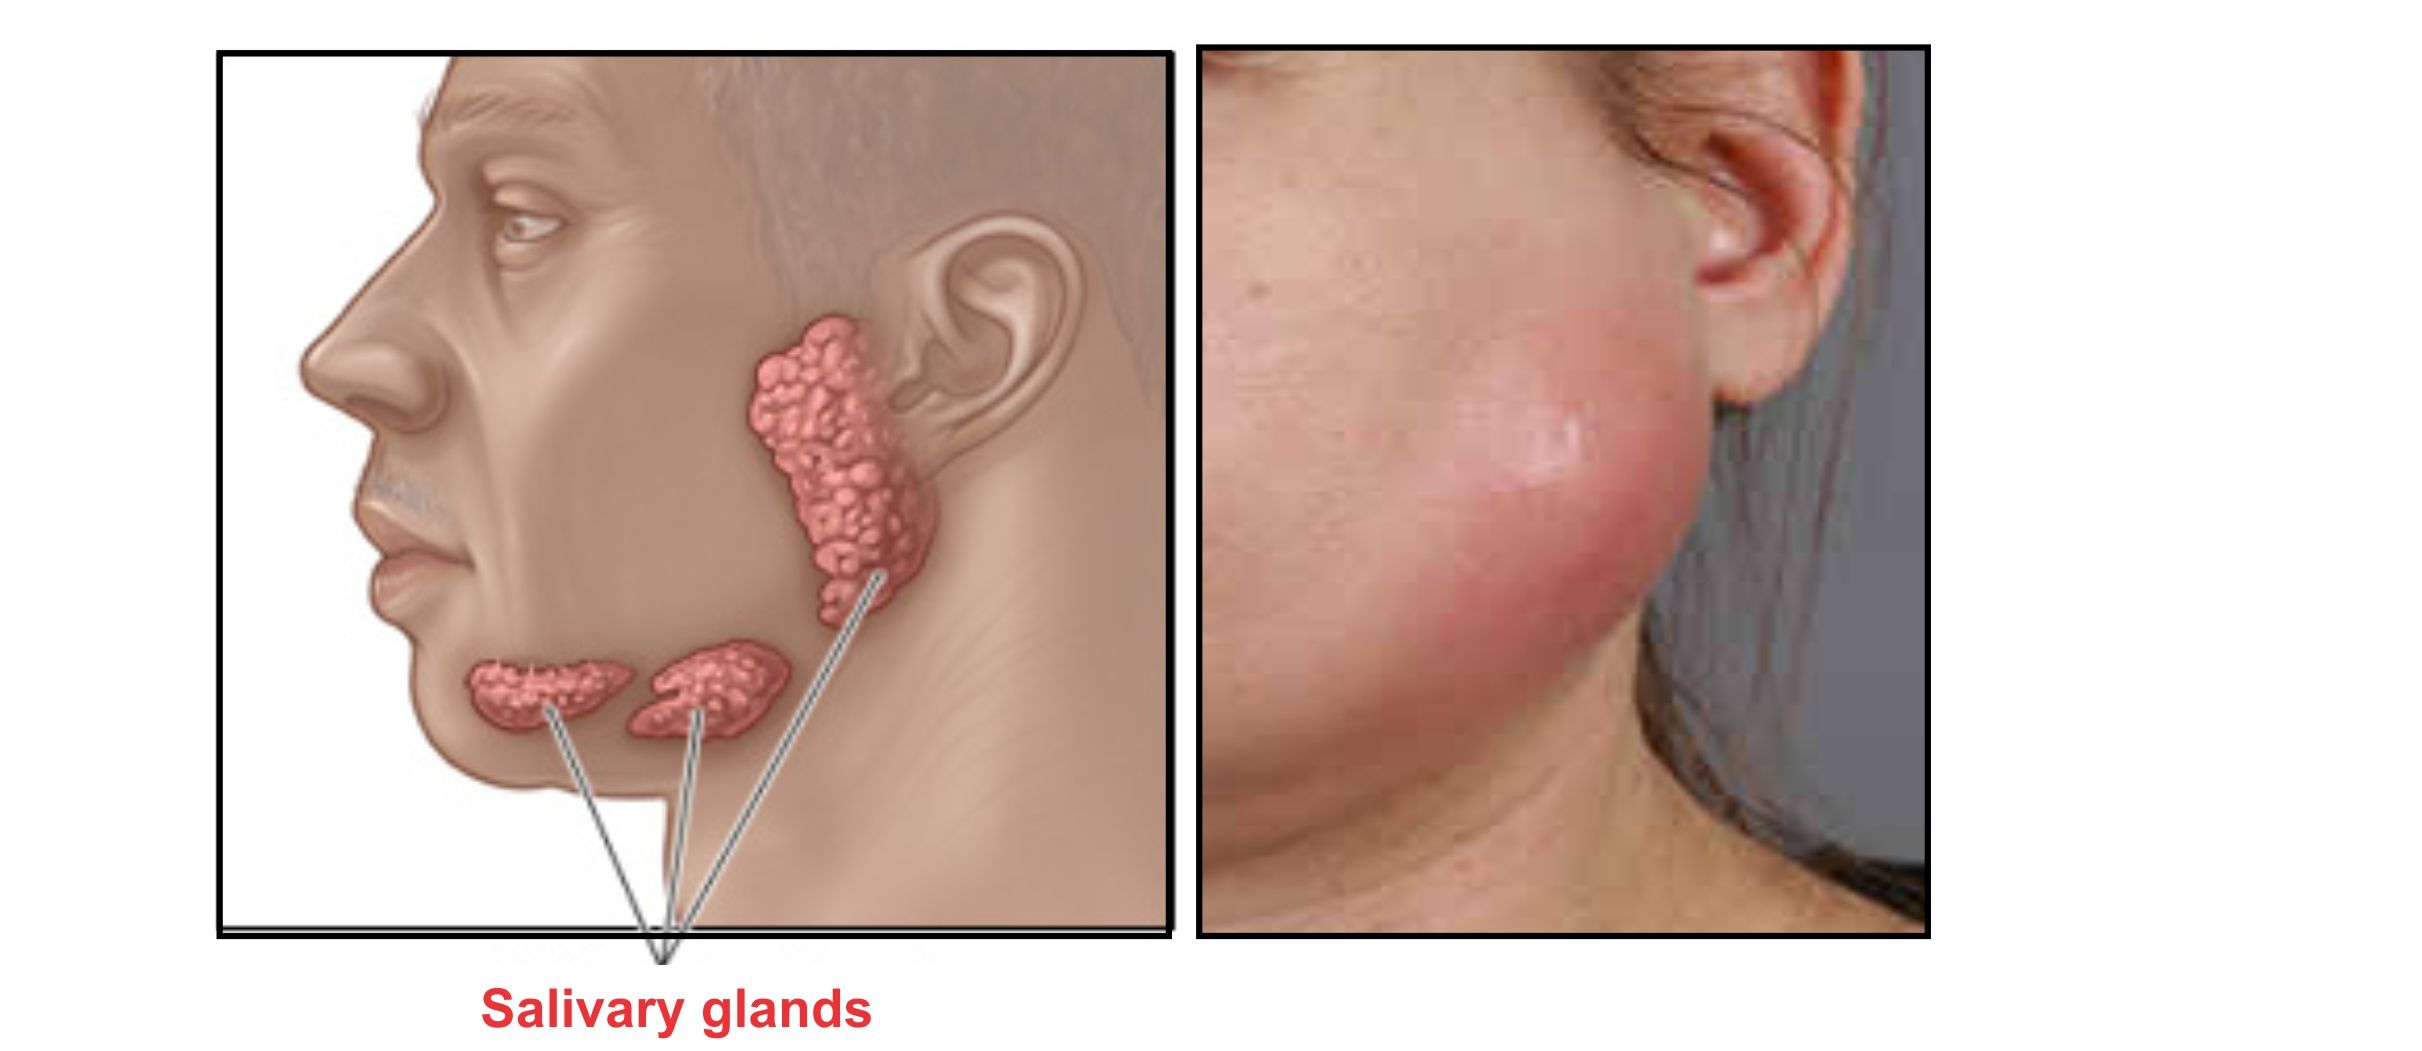 infected salivary glands can cause a lump under jaw or jaw line [ 2422 x 1051 Pixel ]